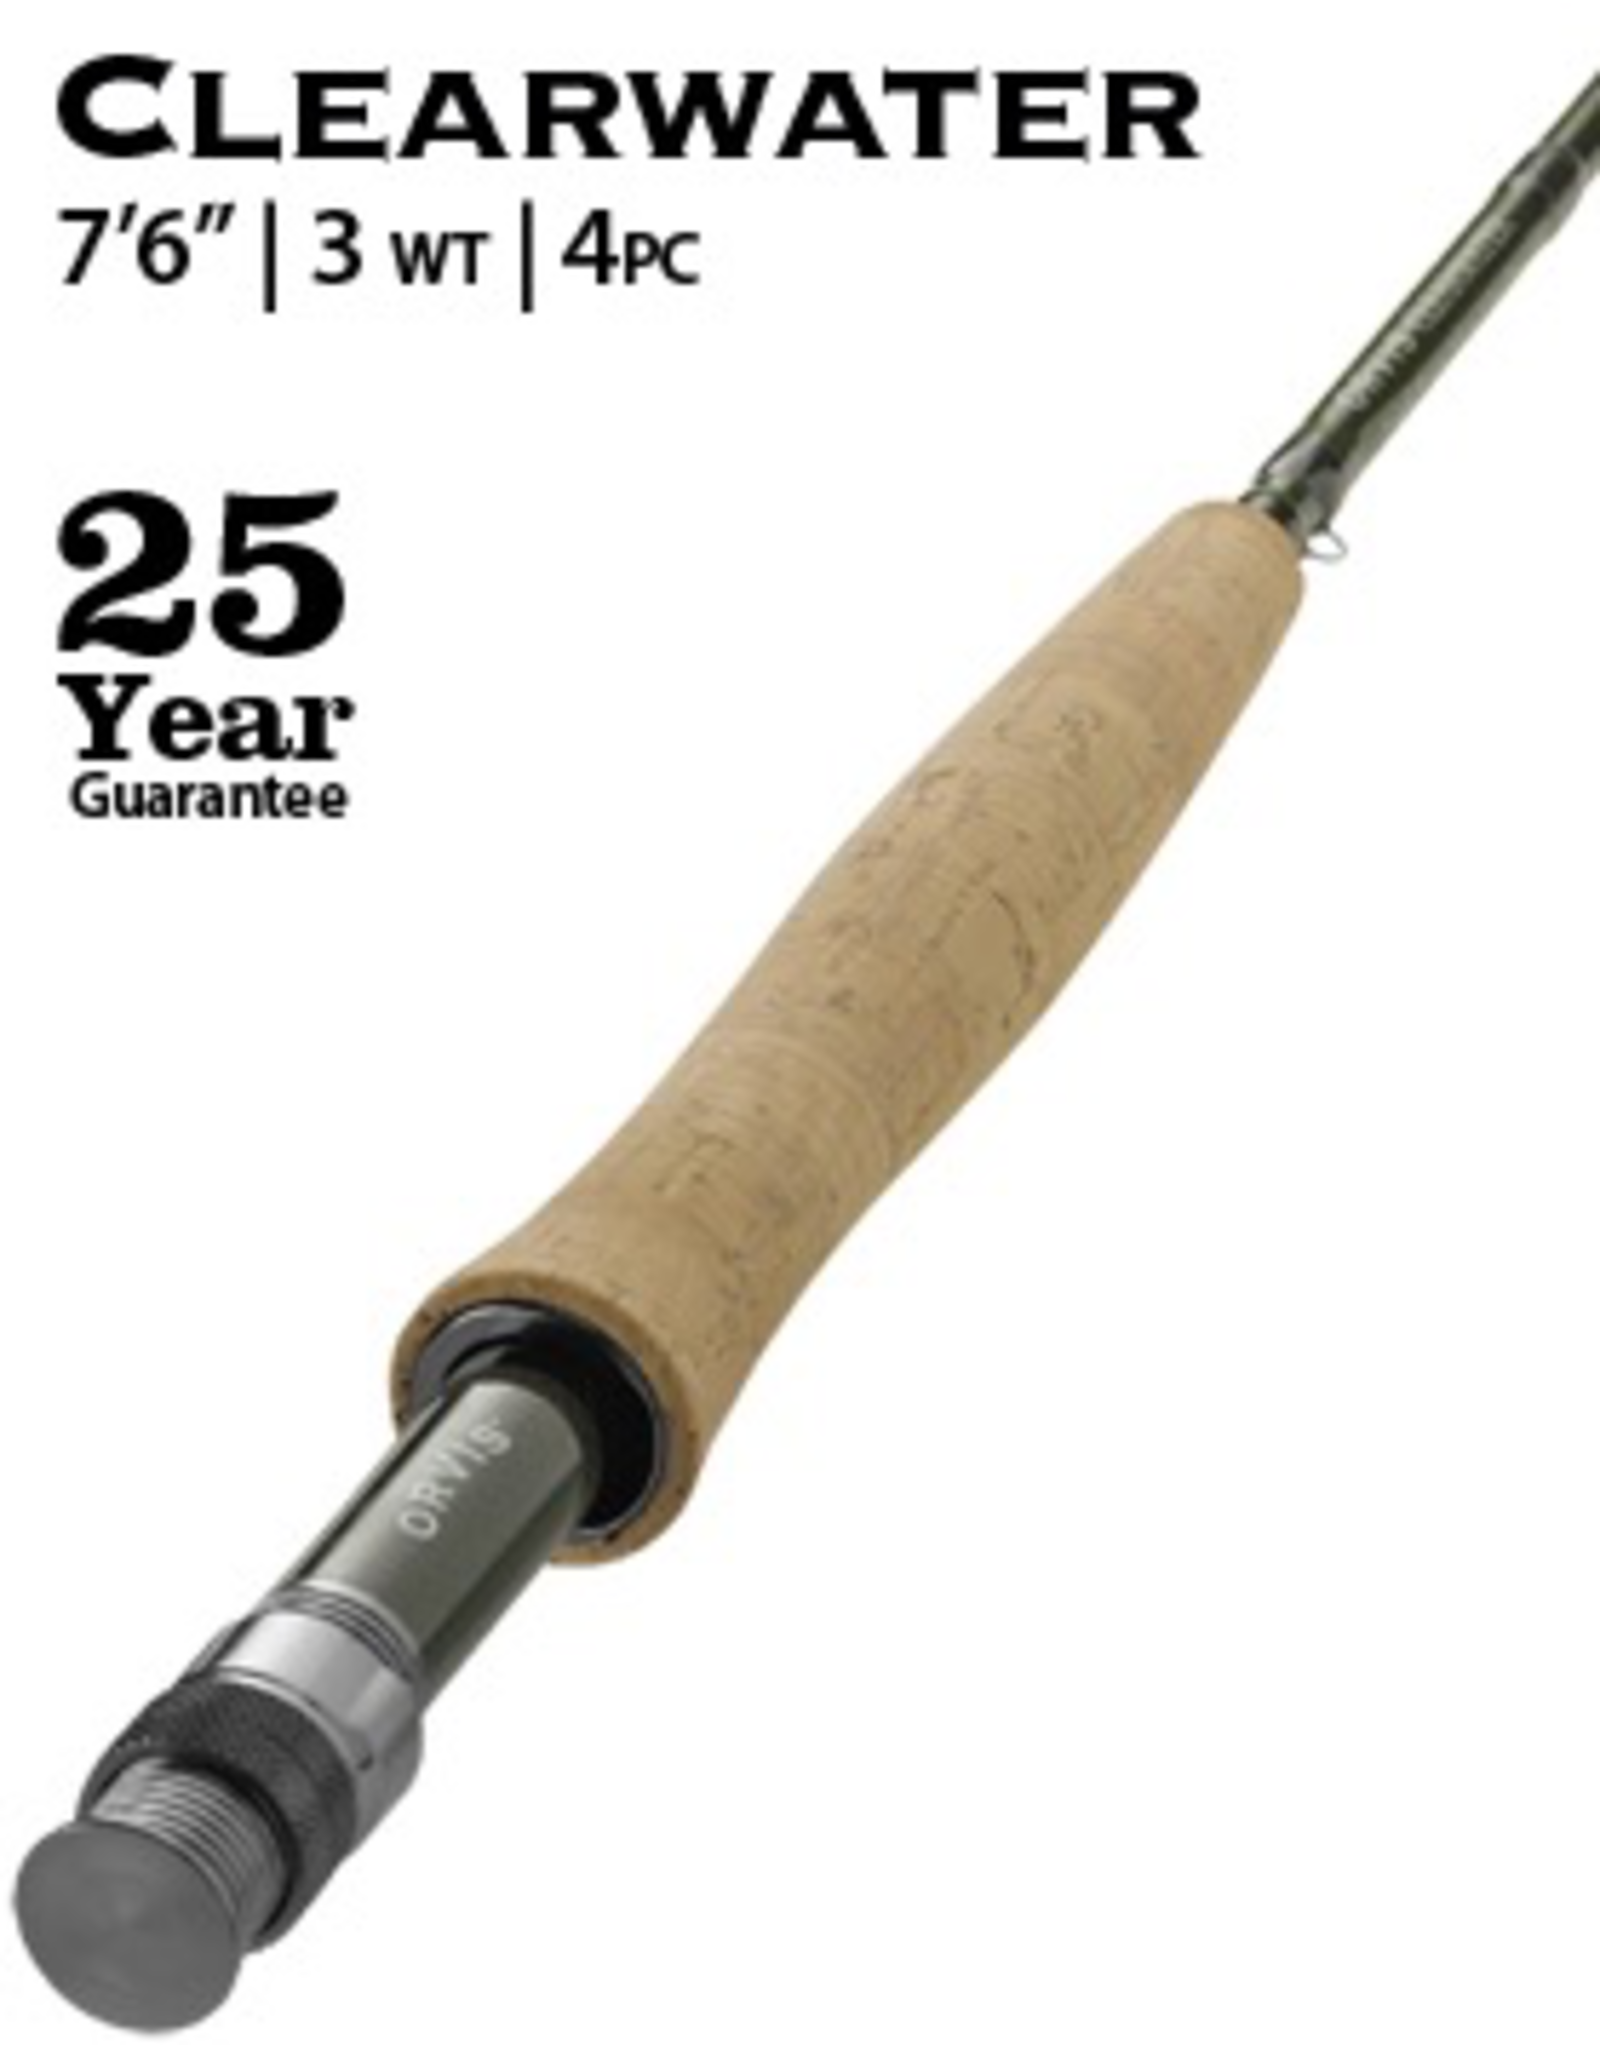 """Orvis NEW Orvis Clearwater Fly Rod 7'6"""" 3wt (4pc)"""